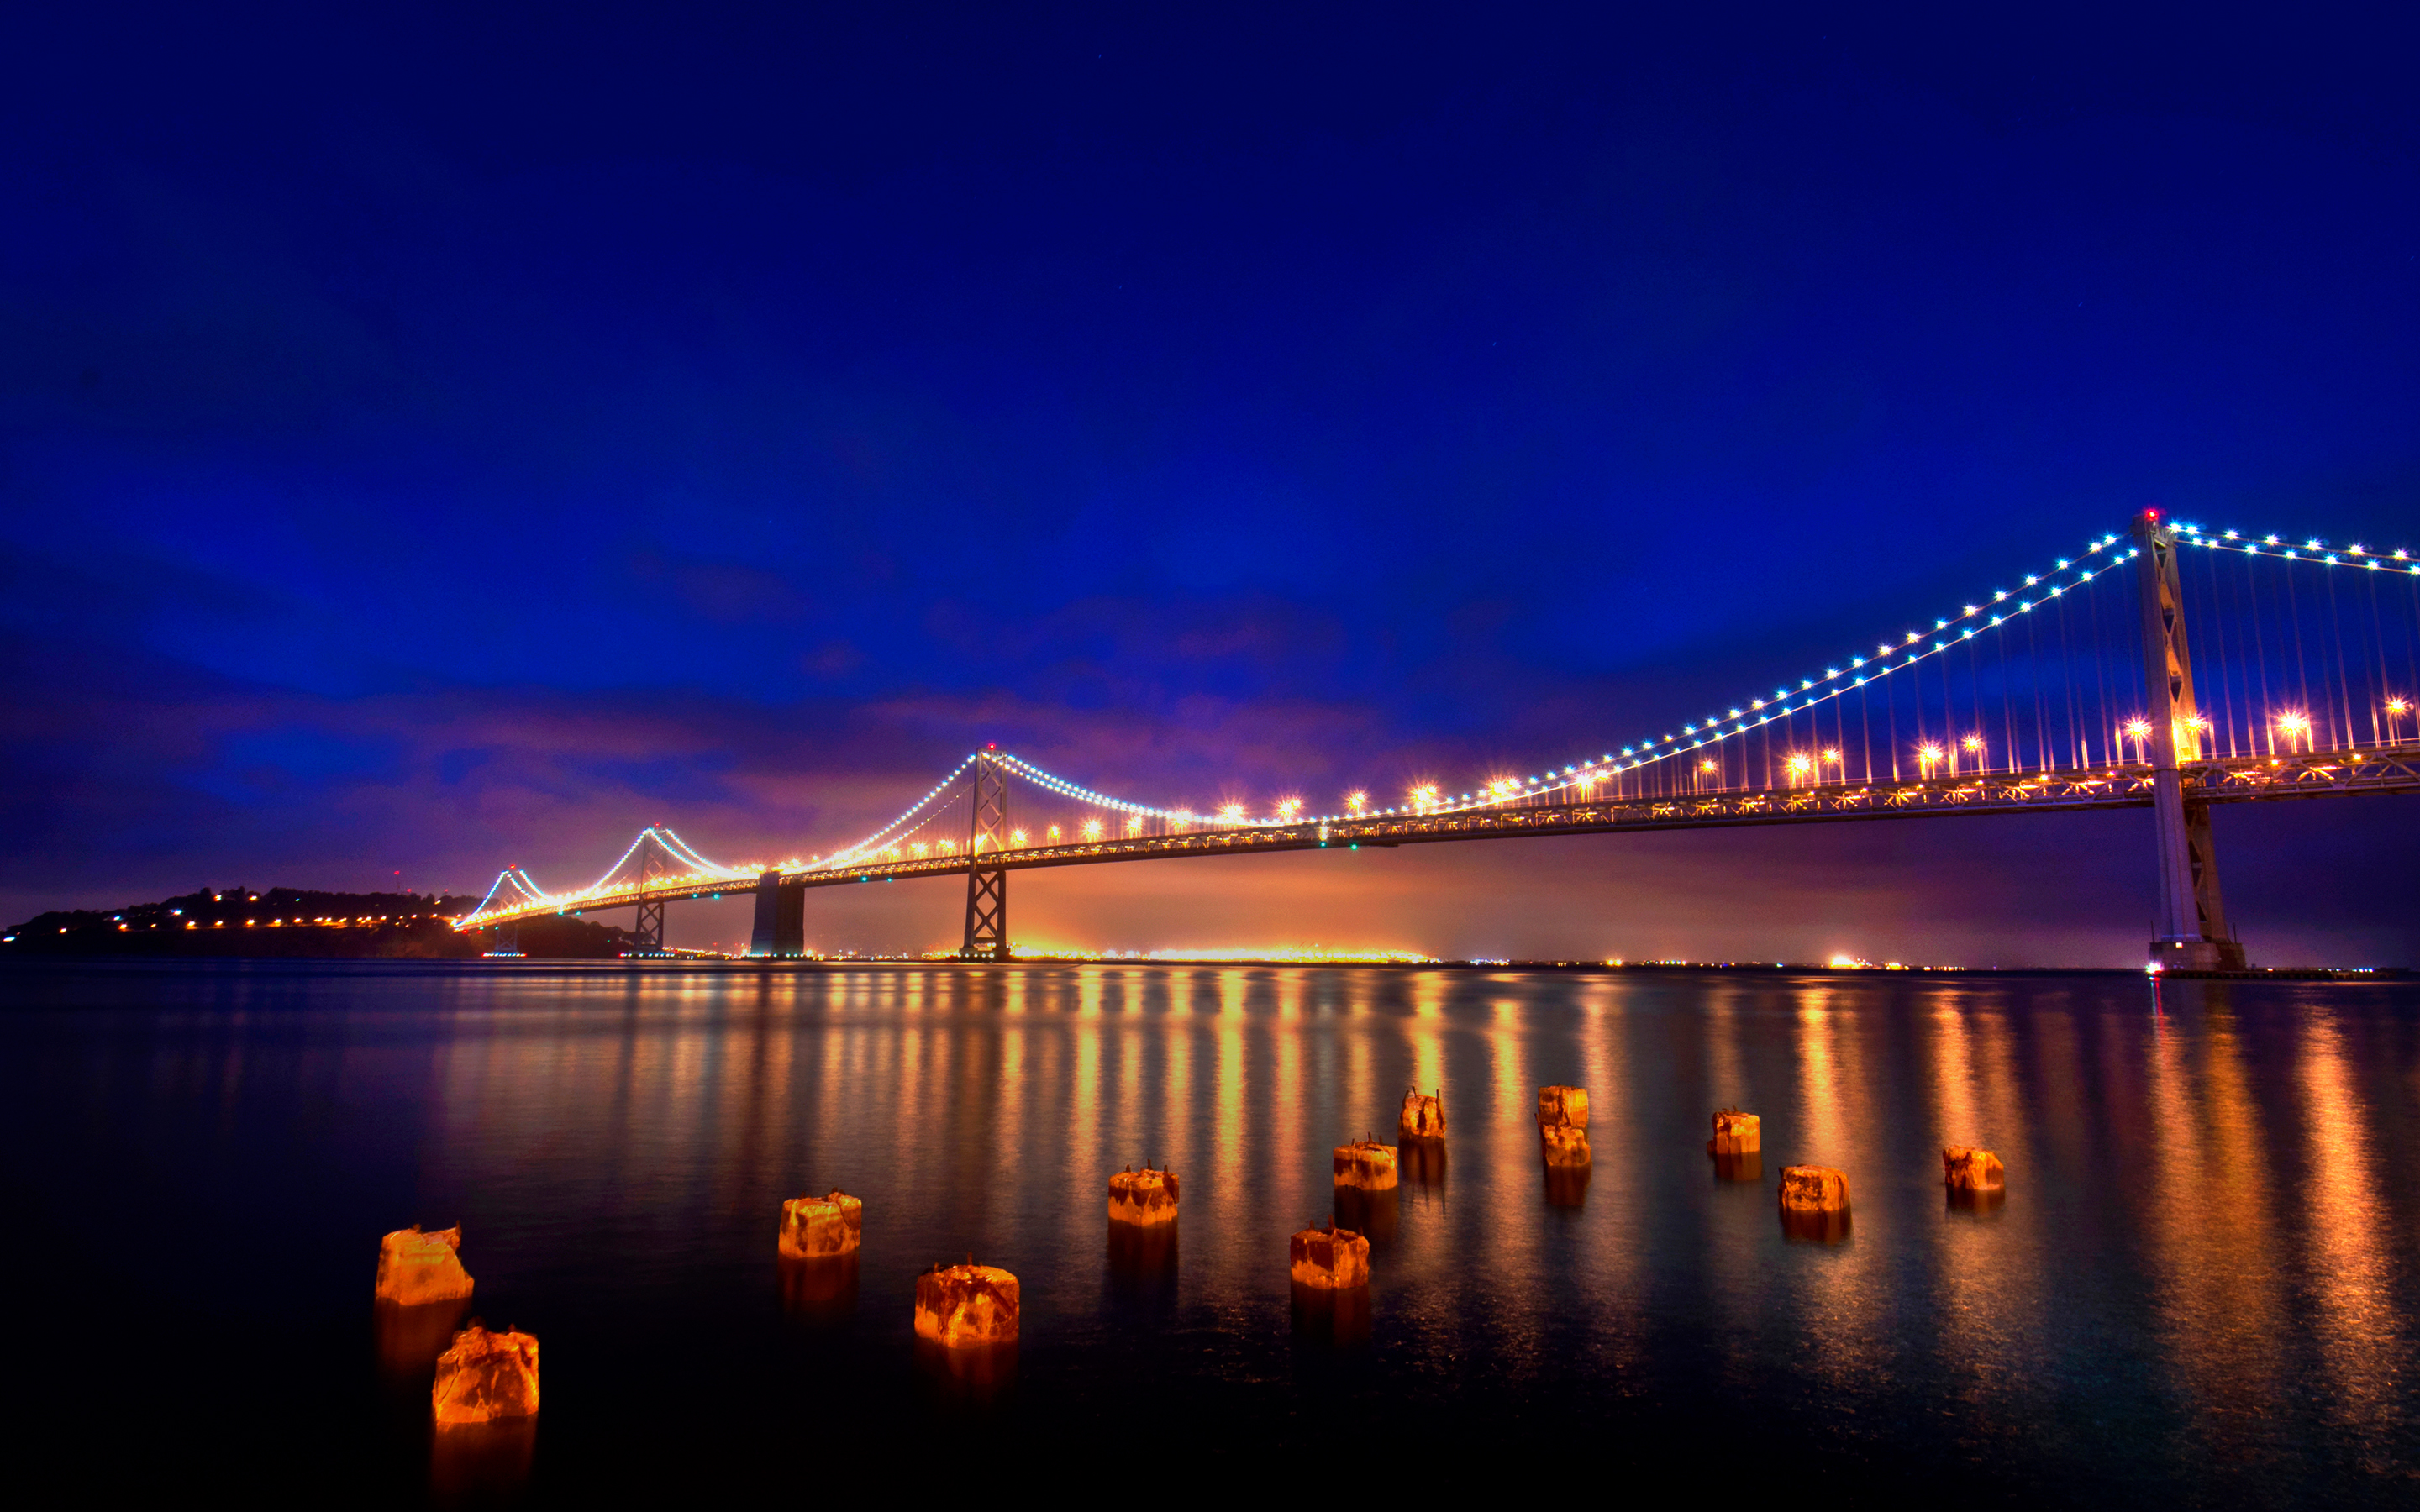 60 Top San Francisco Night Pictures, Photos, & Images ...